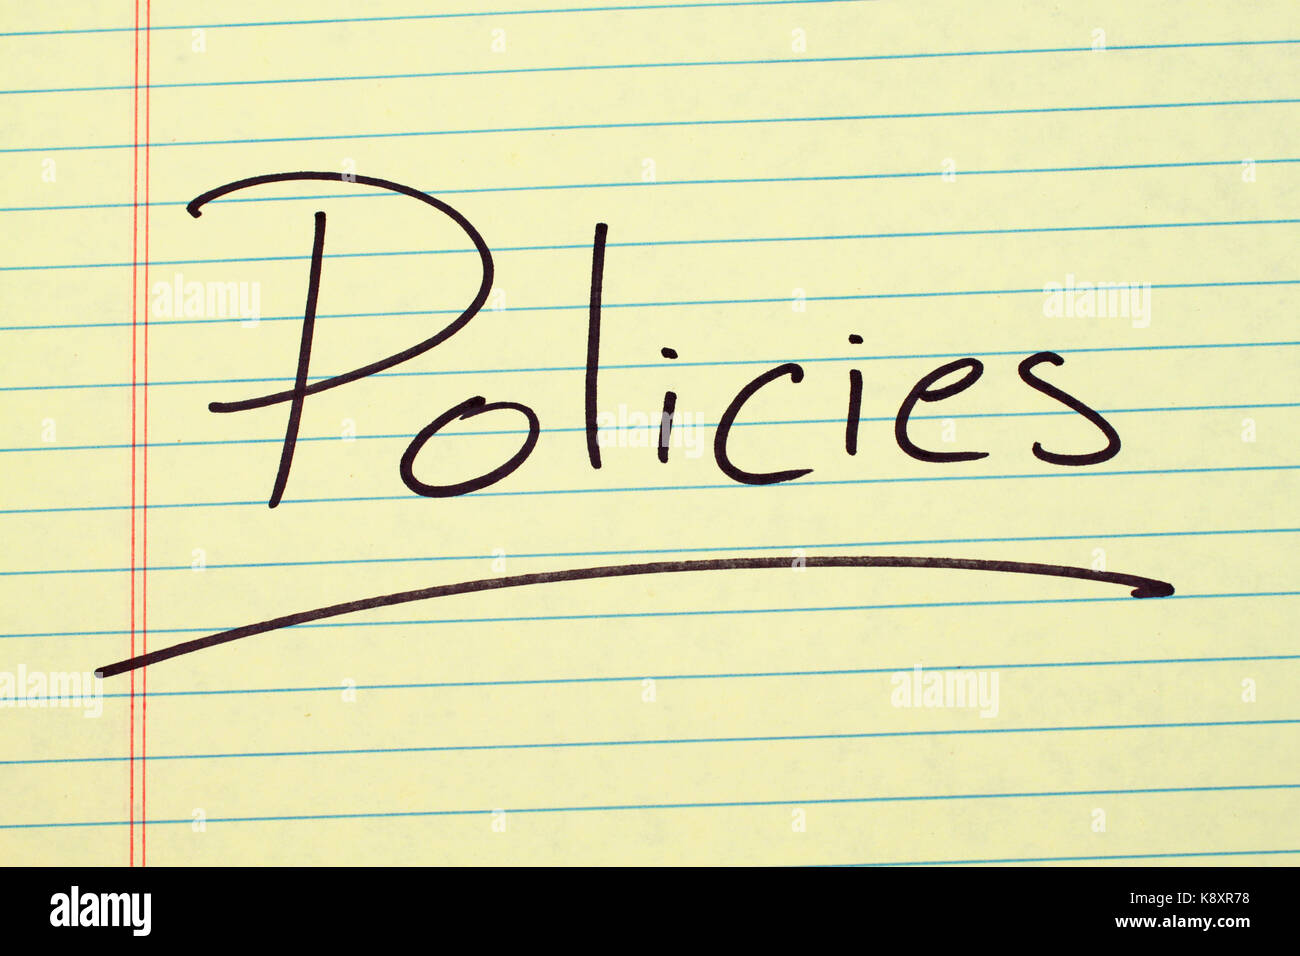 The word 'Policies' underlined on a yellow legal pad - Stock Image